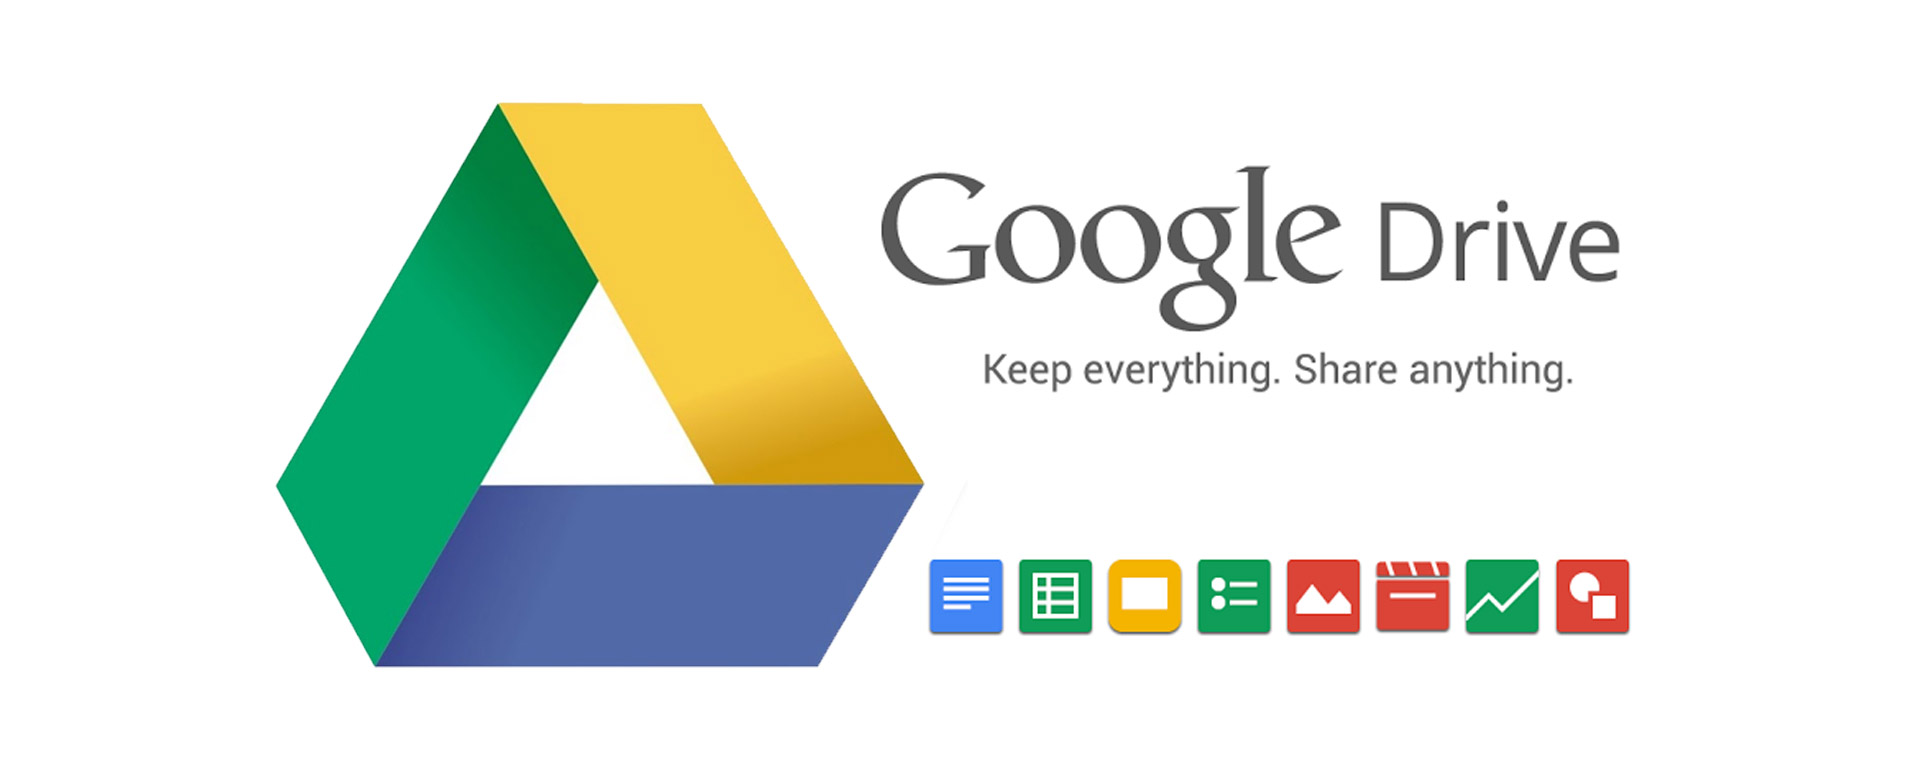 What Is Google Drive And How To Use It